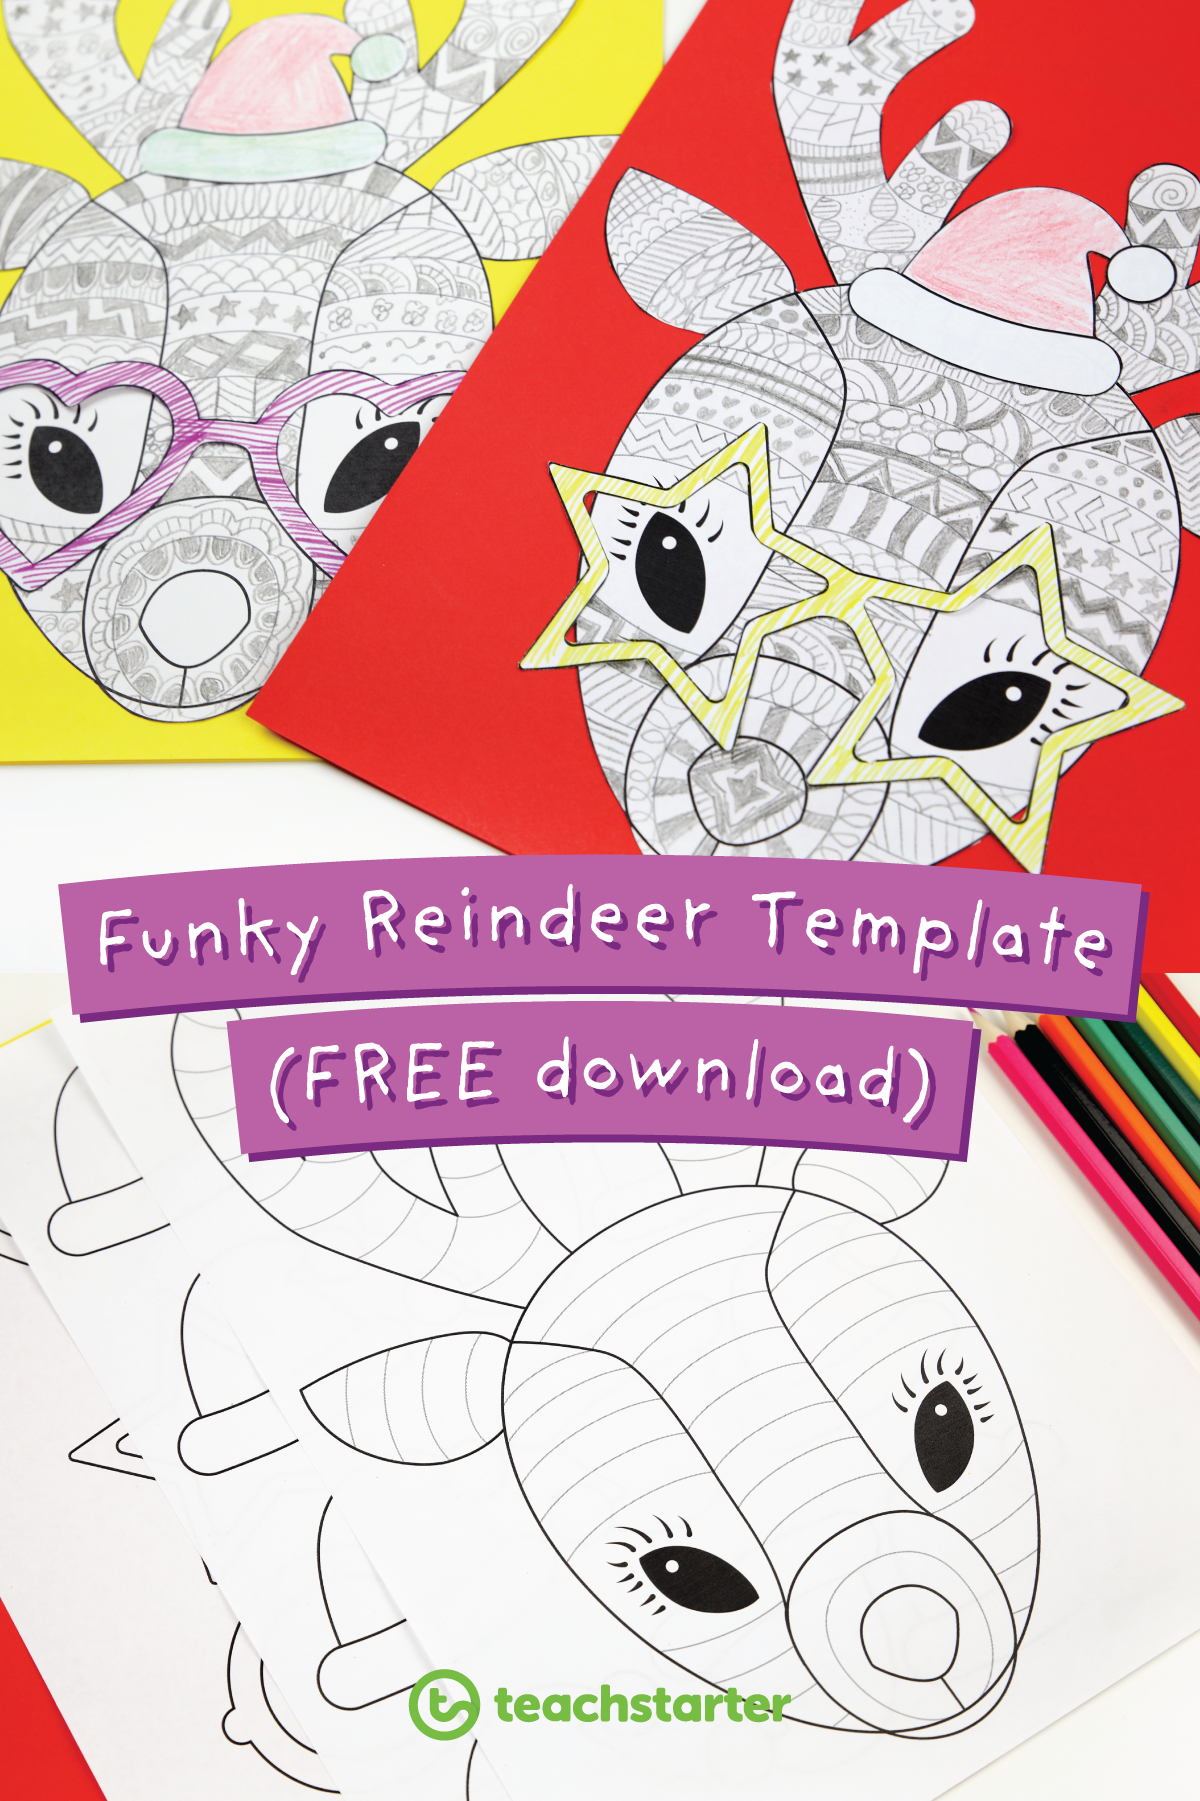 Funky Reindeer Template #funkyreindeer The most popular holiday craft idea is back! Don't forget to do your #funkyreindeer... #funkyreindeer Funky Reindeer Template #funkyreindeer The most popular holiday craft idea is back! Don't forget to do your #funkyreindeer... #funkyreindeer